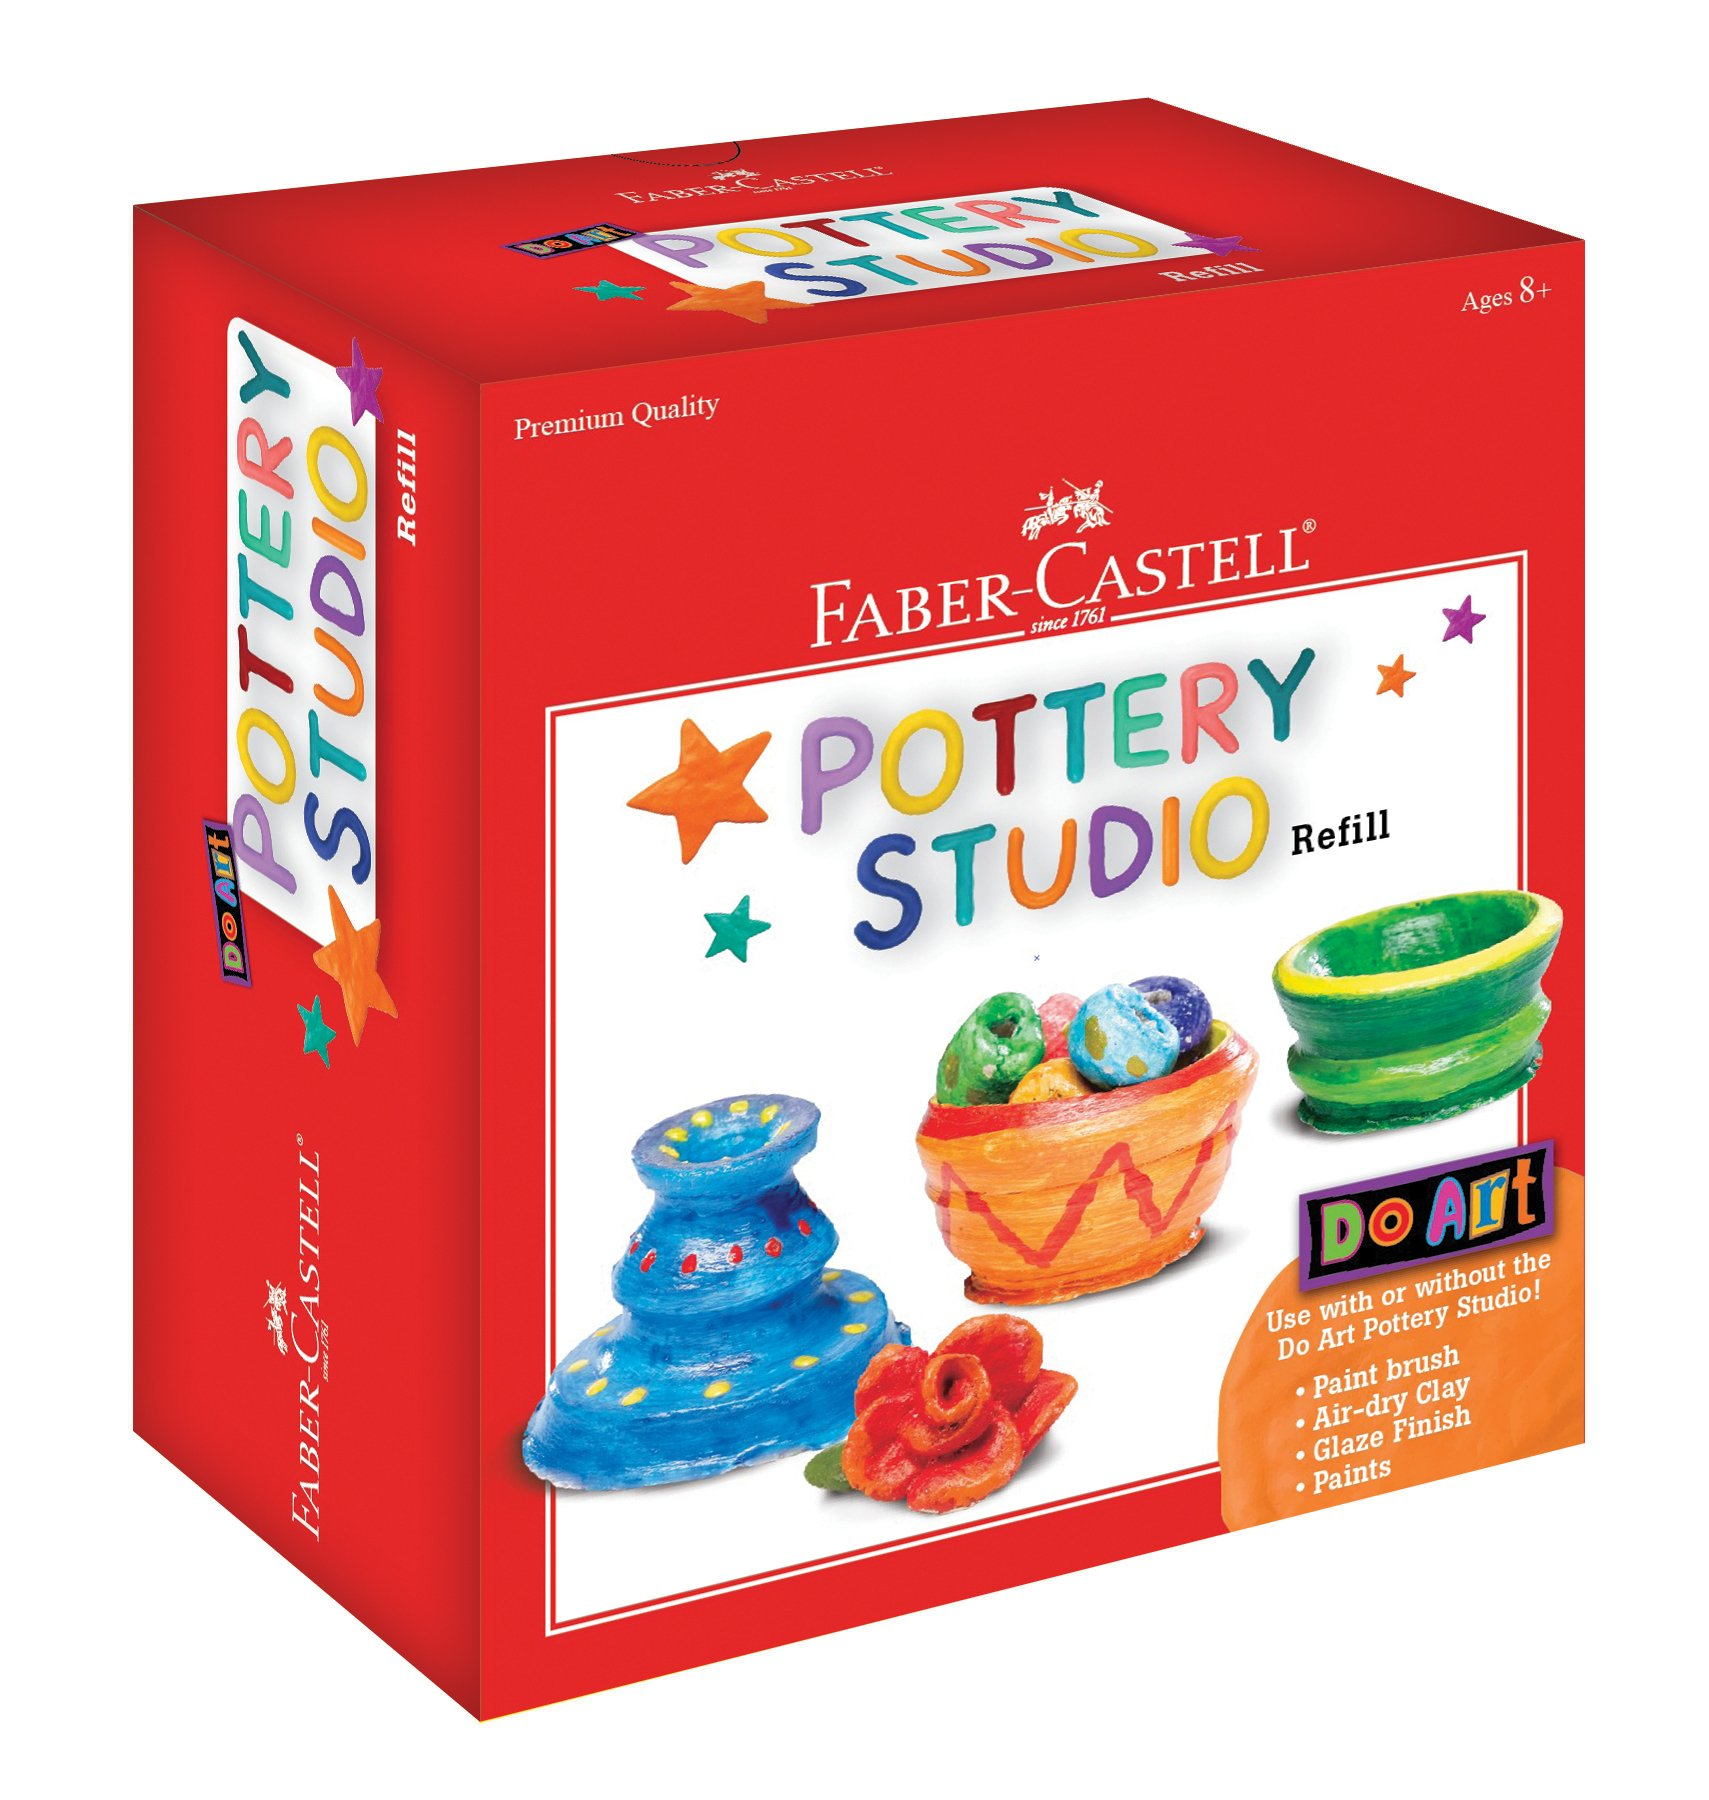 Faber-Castell Do Art Pottery Studio Refill - 2 Pounds of Air-Dry Pottery Clay for Kids